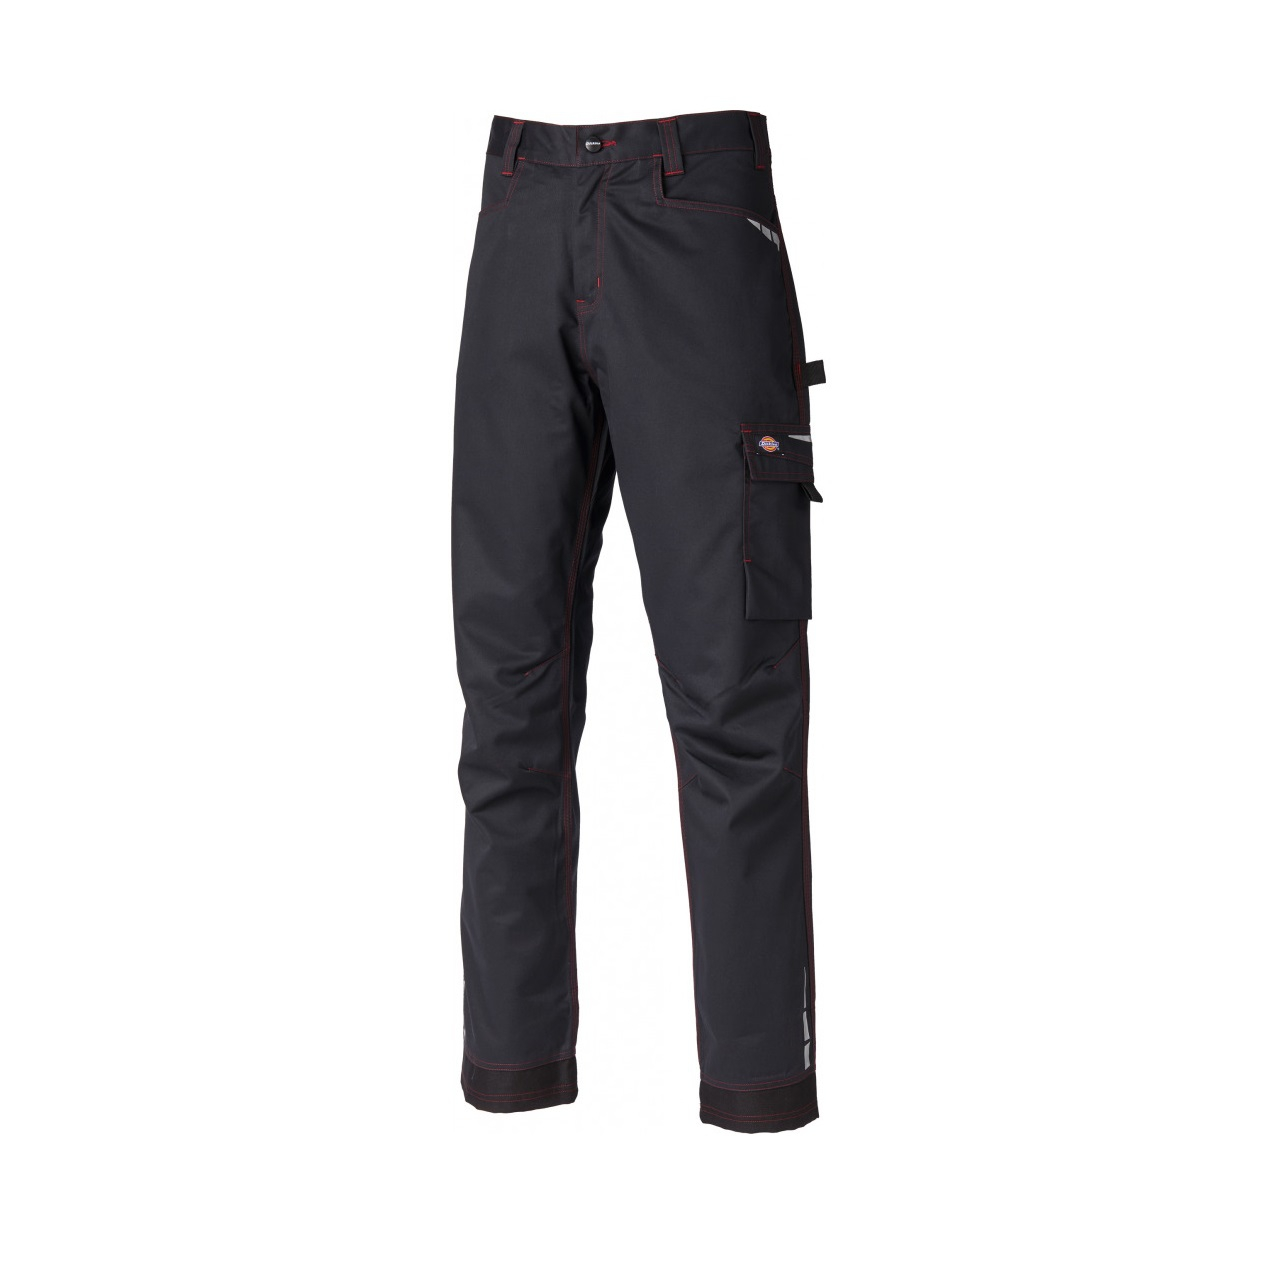 dickies pantalon de travail lakemont couleur et taille au choix distriartisan. Black Bedroom Furniture Sets. Home Design Ideas